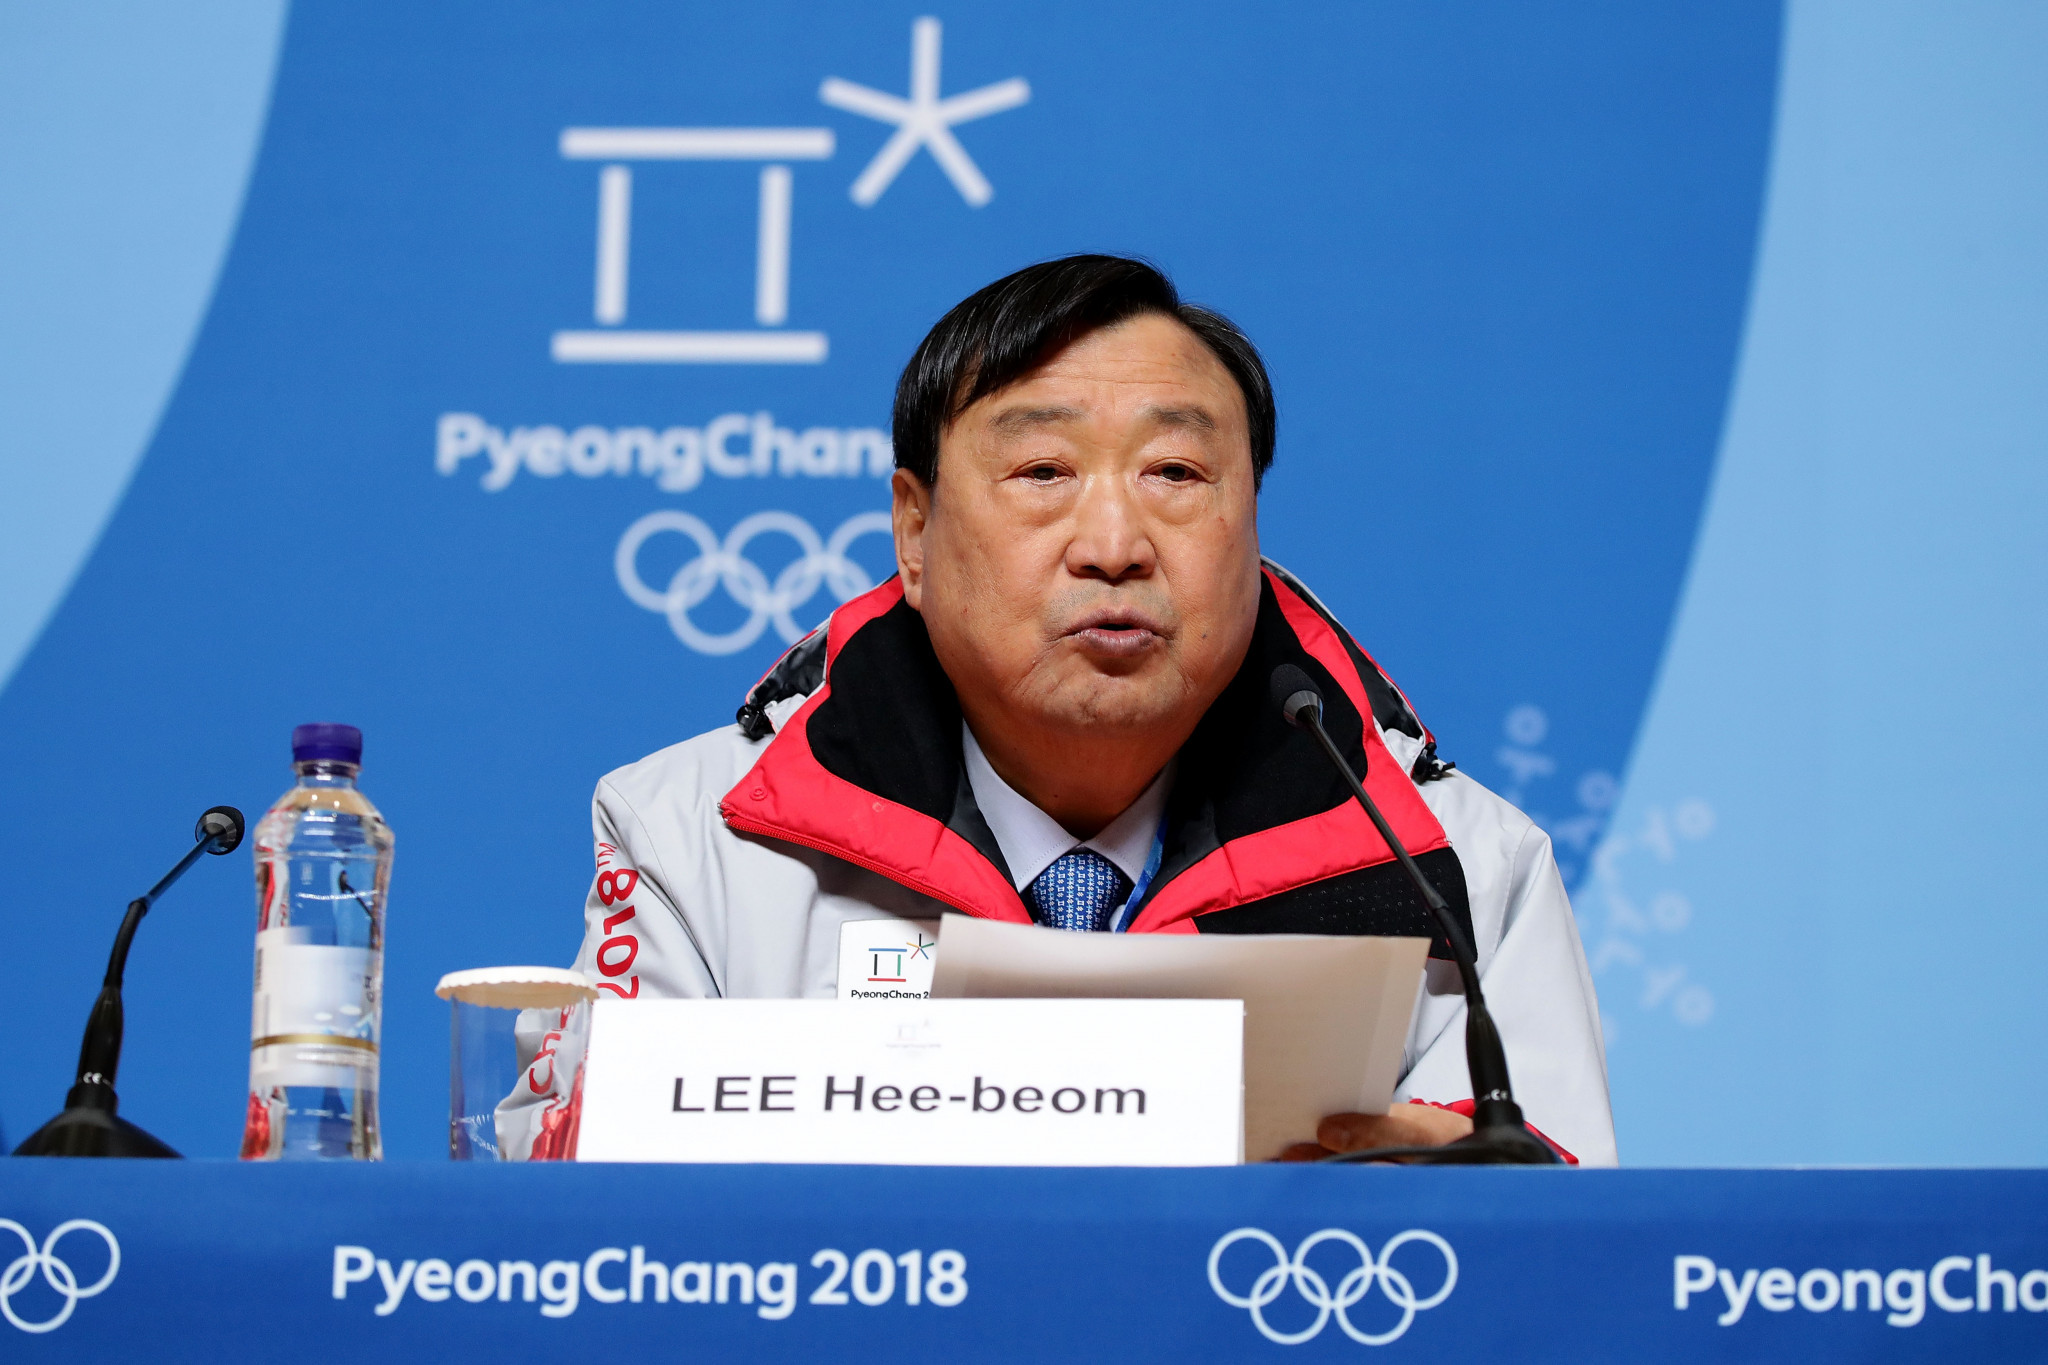 Pyeongchang 2018 President dismisses concerns over Korean unification flag at Opening Ceremony